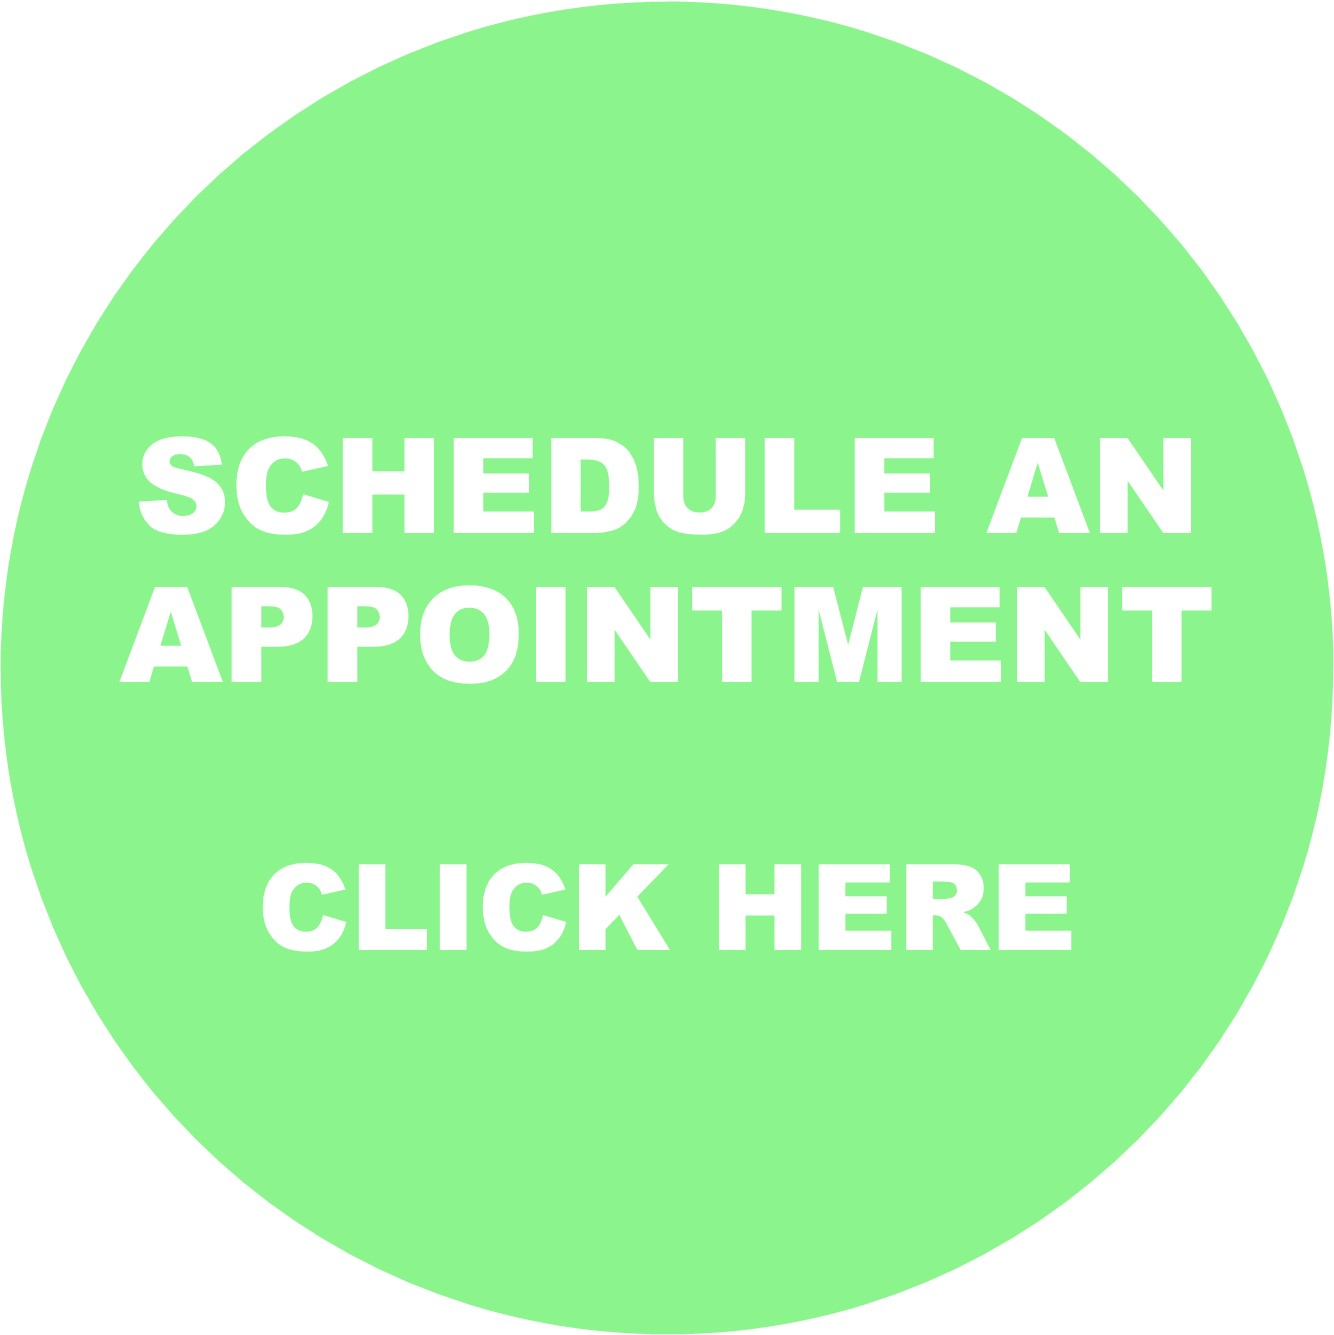 Schedule An Appointment with Precision - Massages Springfield MO